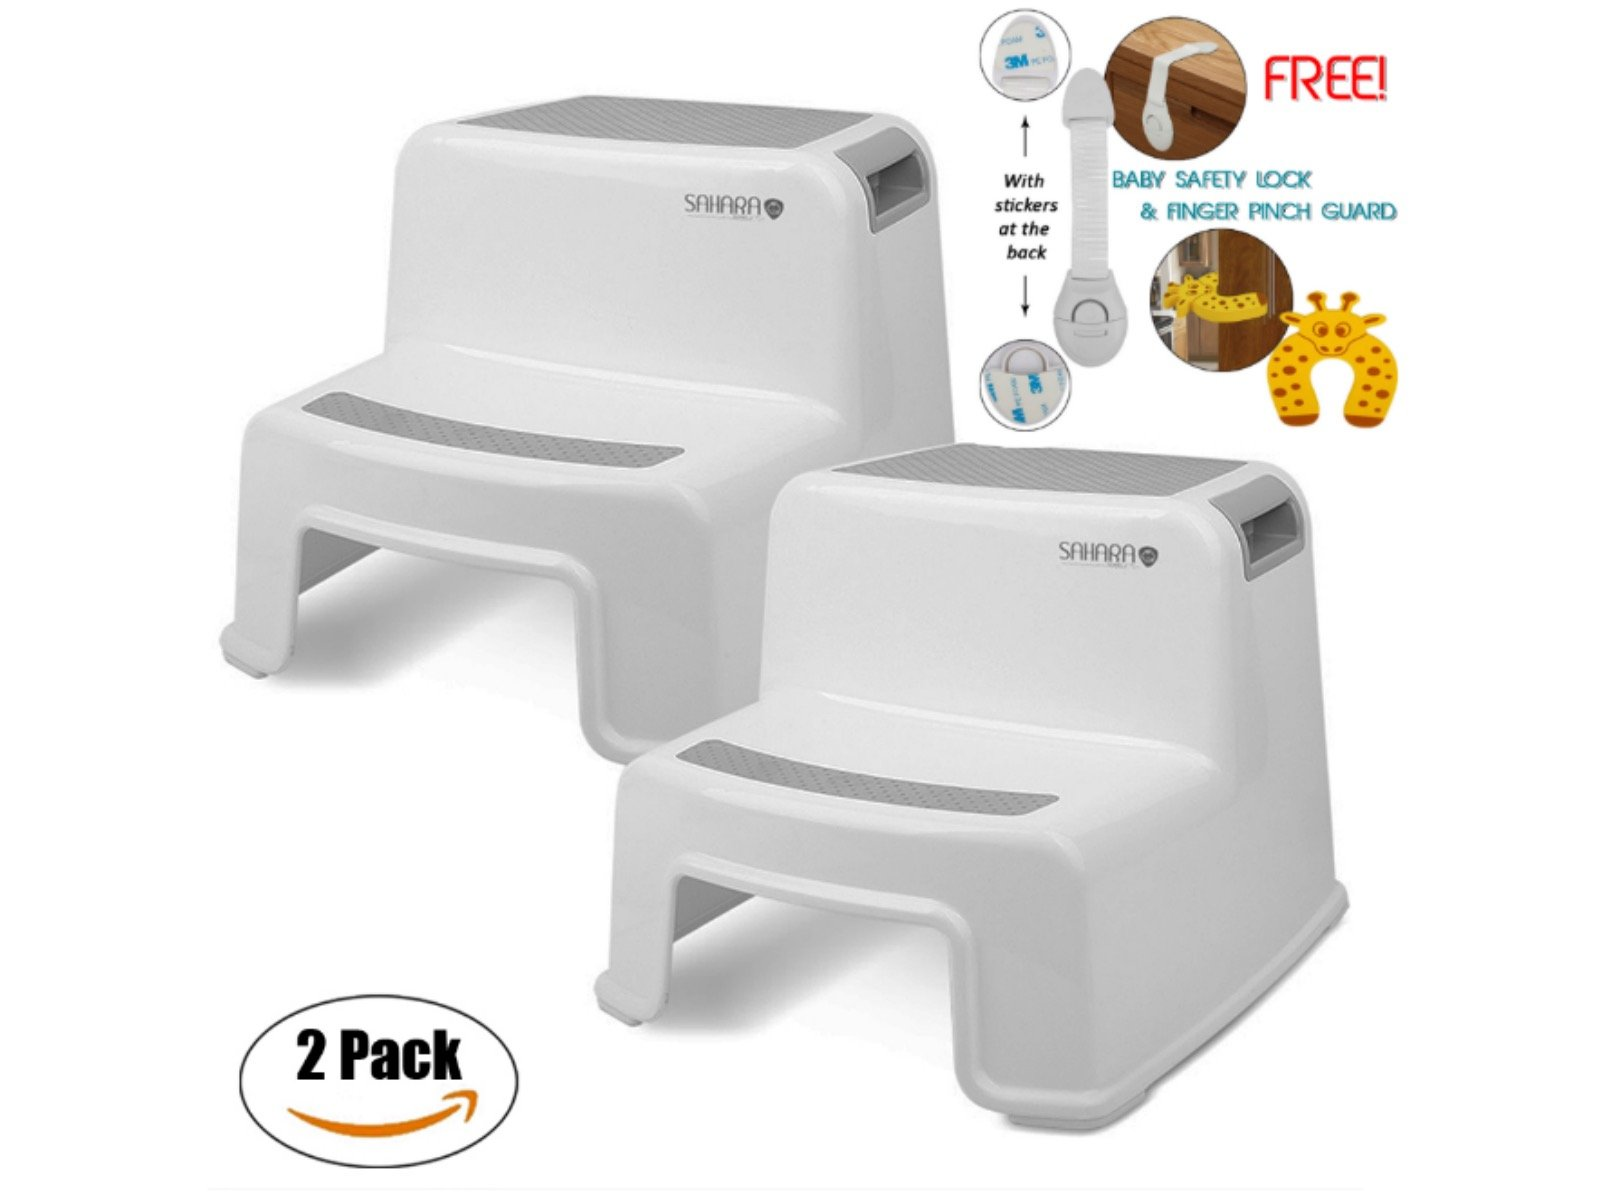 Kids Step Stool By Sahara Baby: Dual Height Step Stool for Toddlers, Anti-Slip Rubber For Safety, Suitable For Kitchen or Potty Training in Bathroom With Door Pinch & Safety Lock Accessories (2 pack)